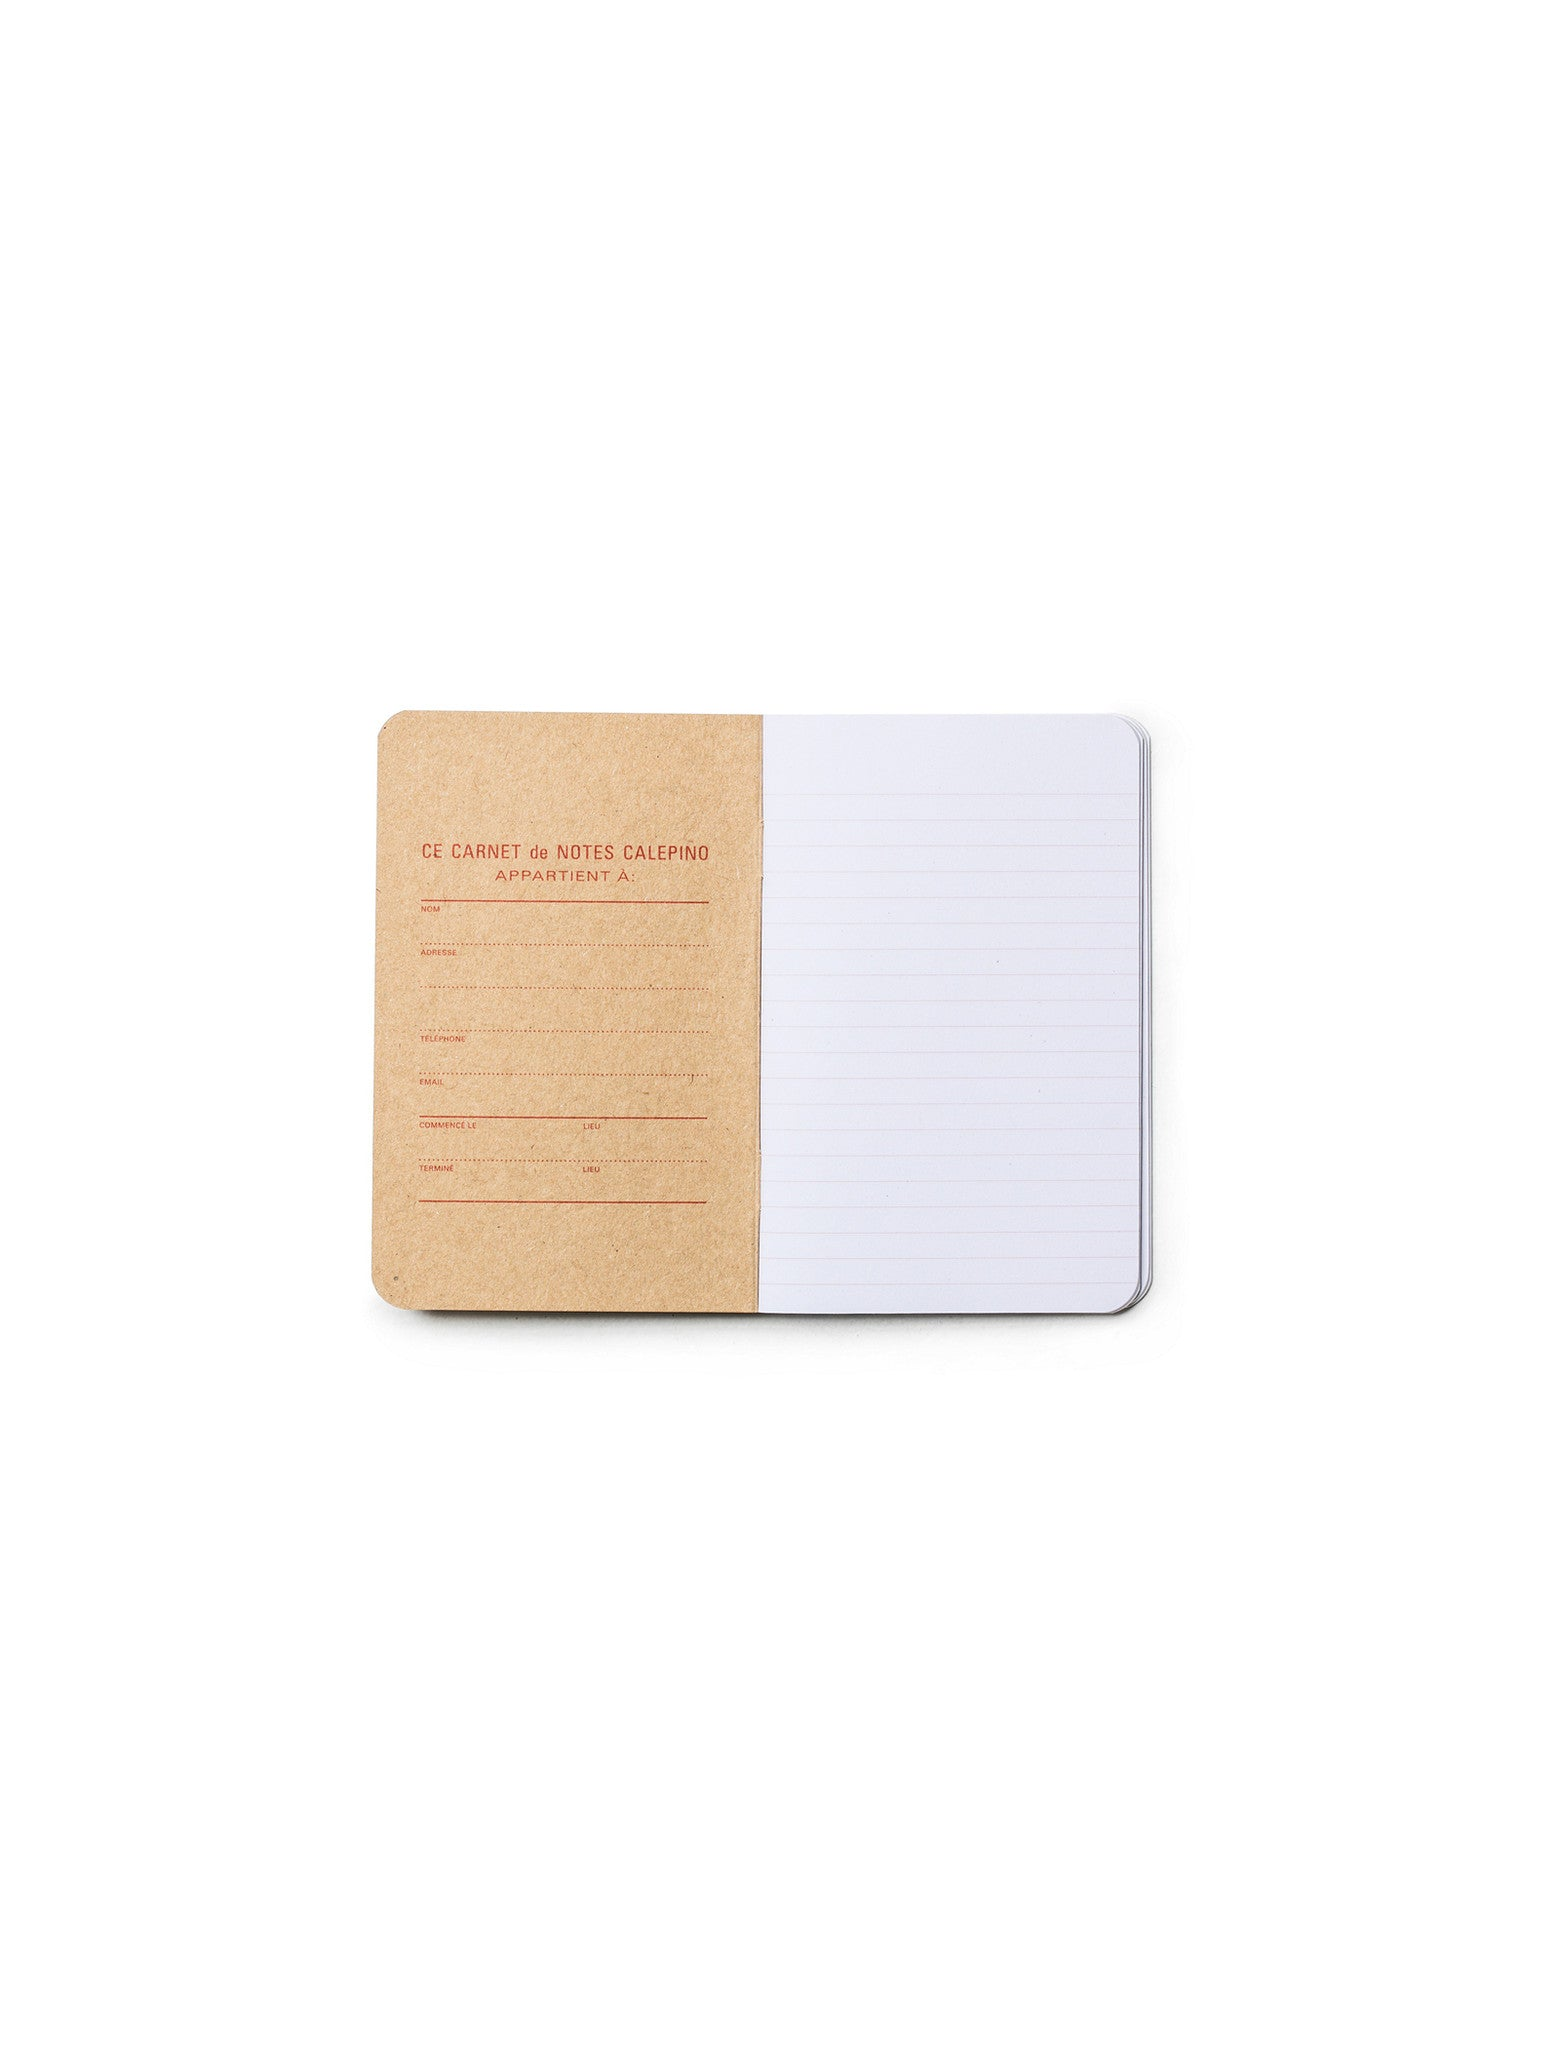 Box of 3 Memo Books - Ruled Paper no.1